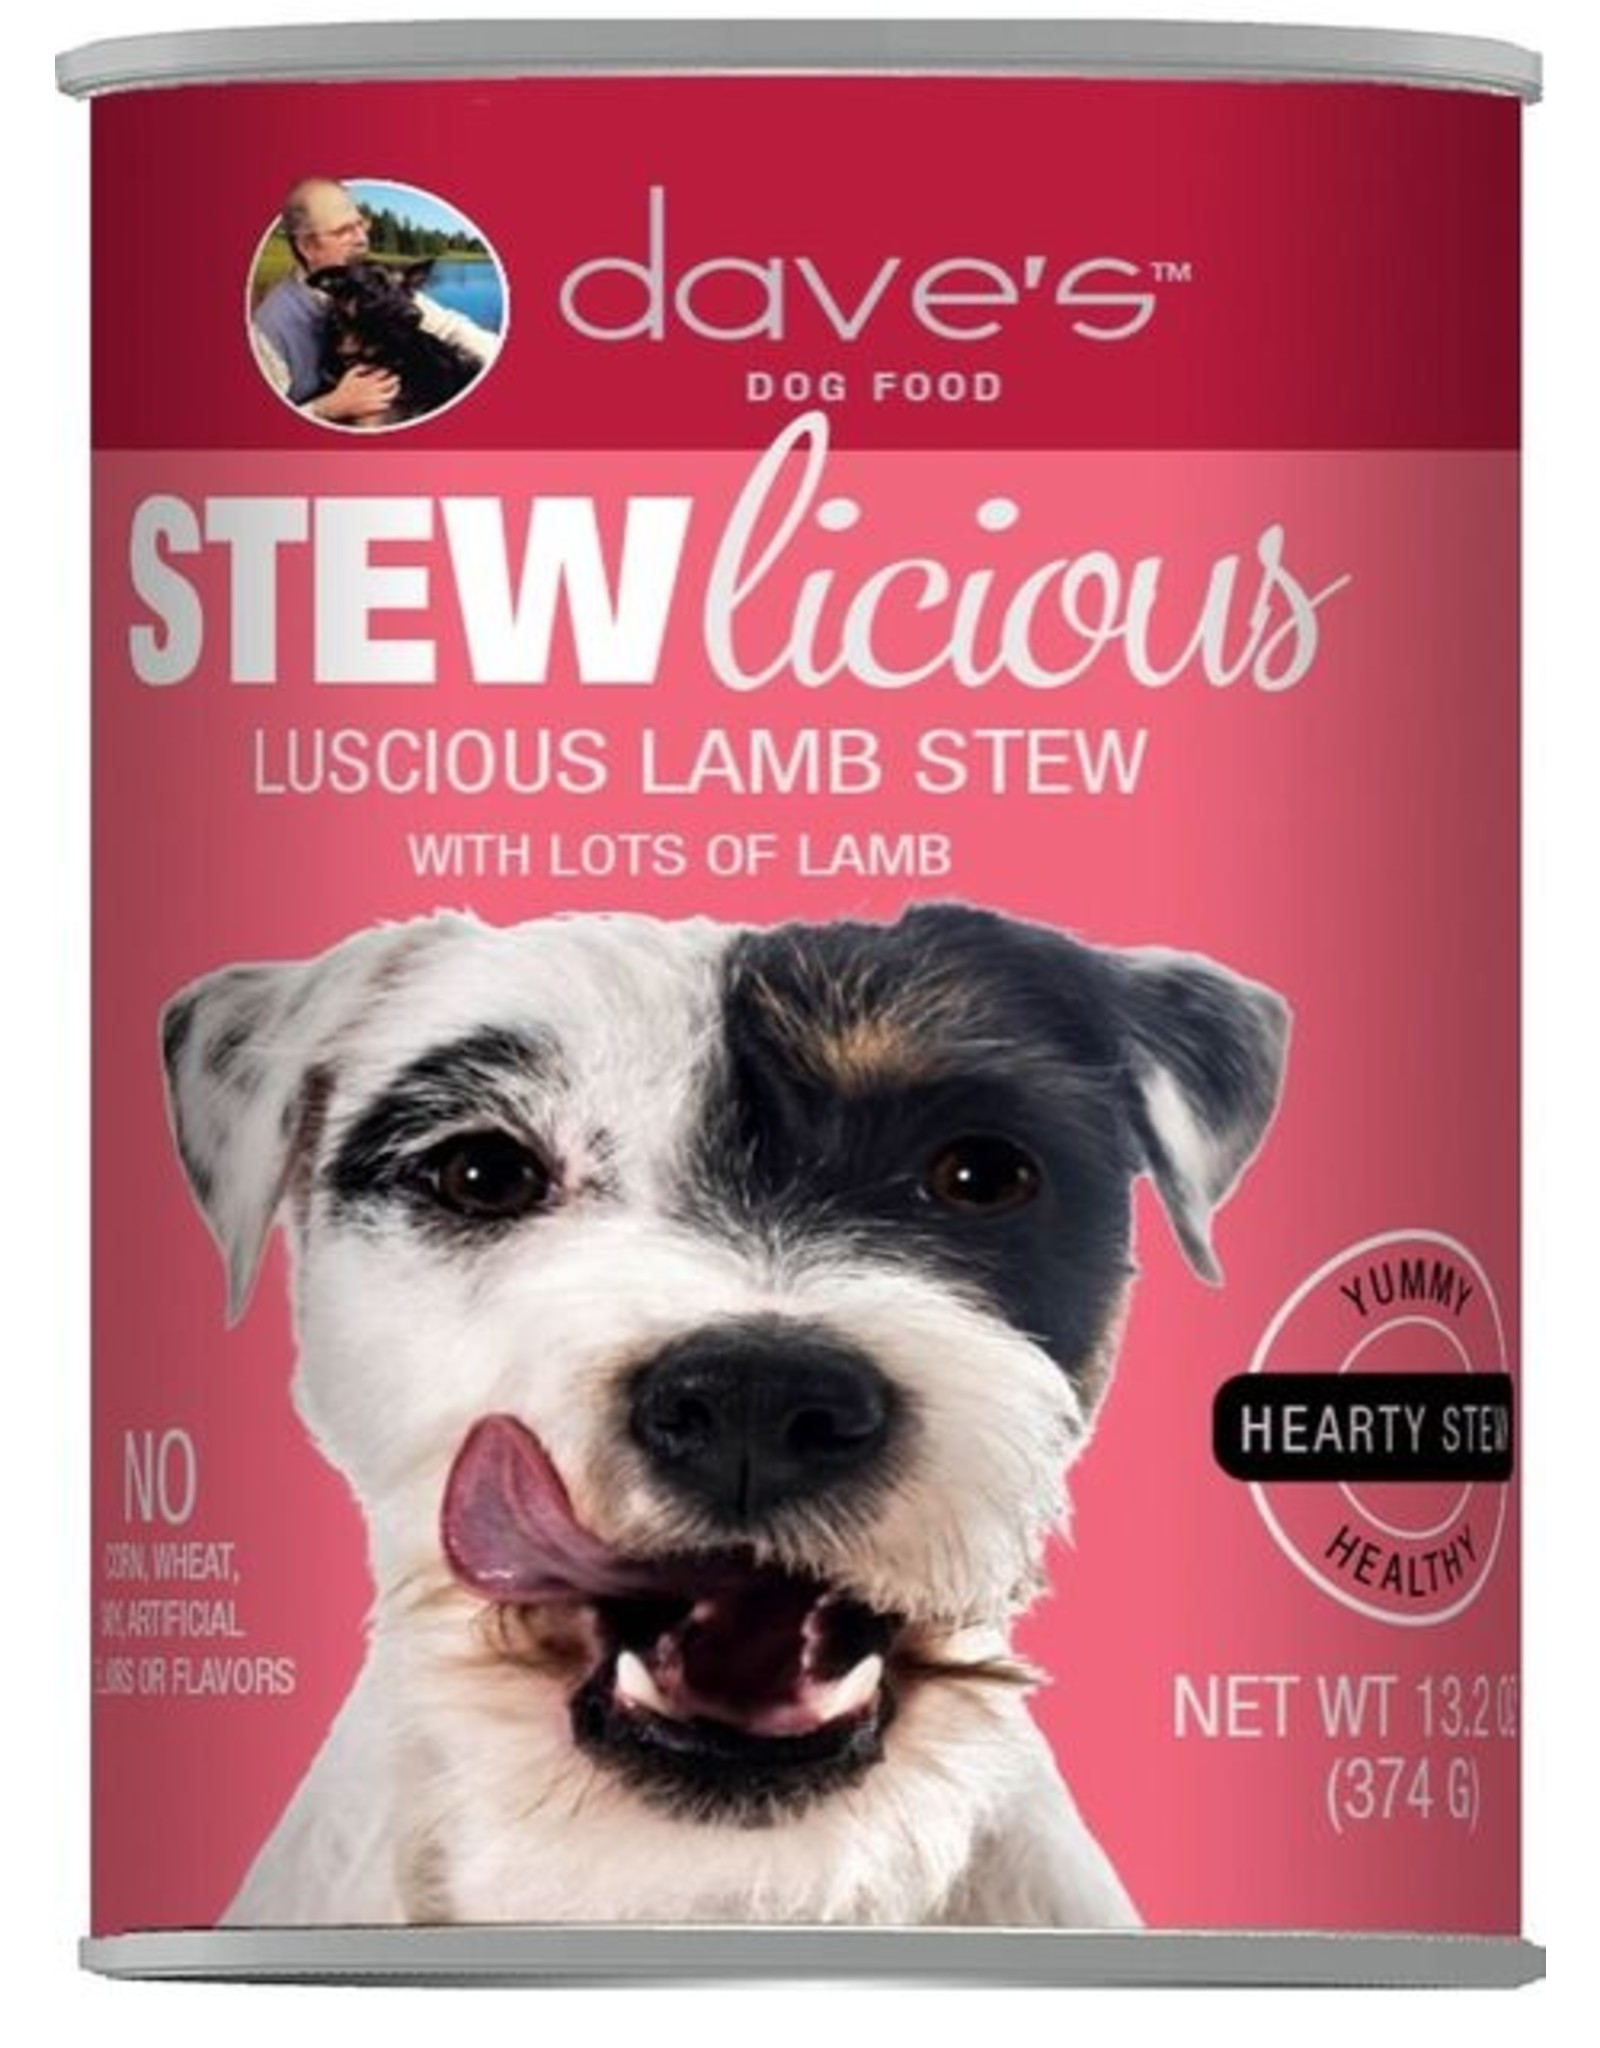 Dave's Pet Food Dave's Wet Dog Food Stewlicious Luscious Lamb Stew 13oz Can Grain Inclusive